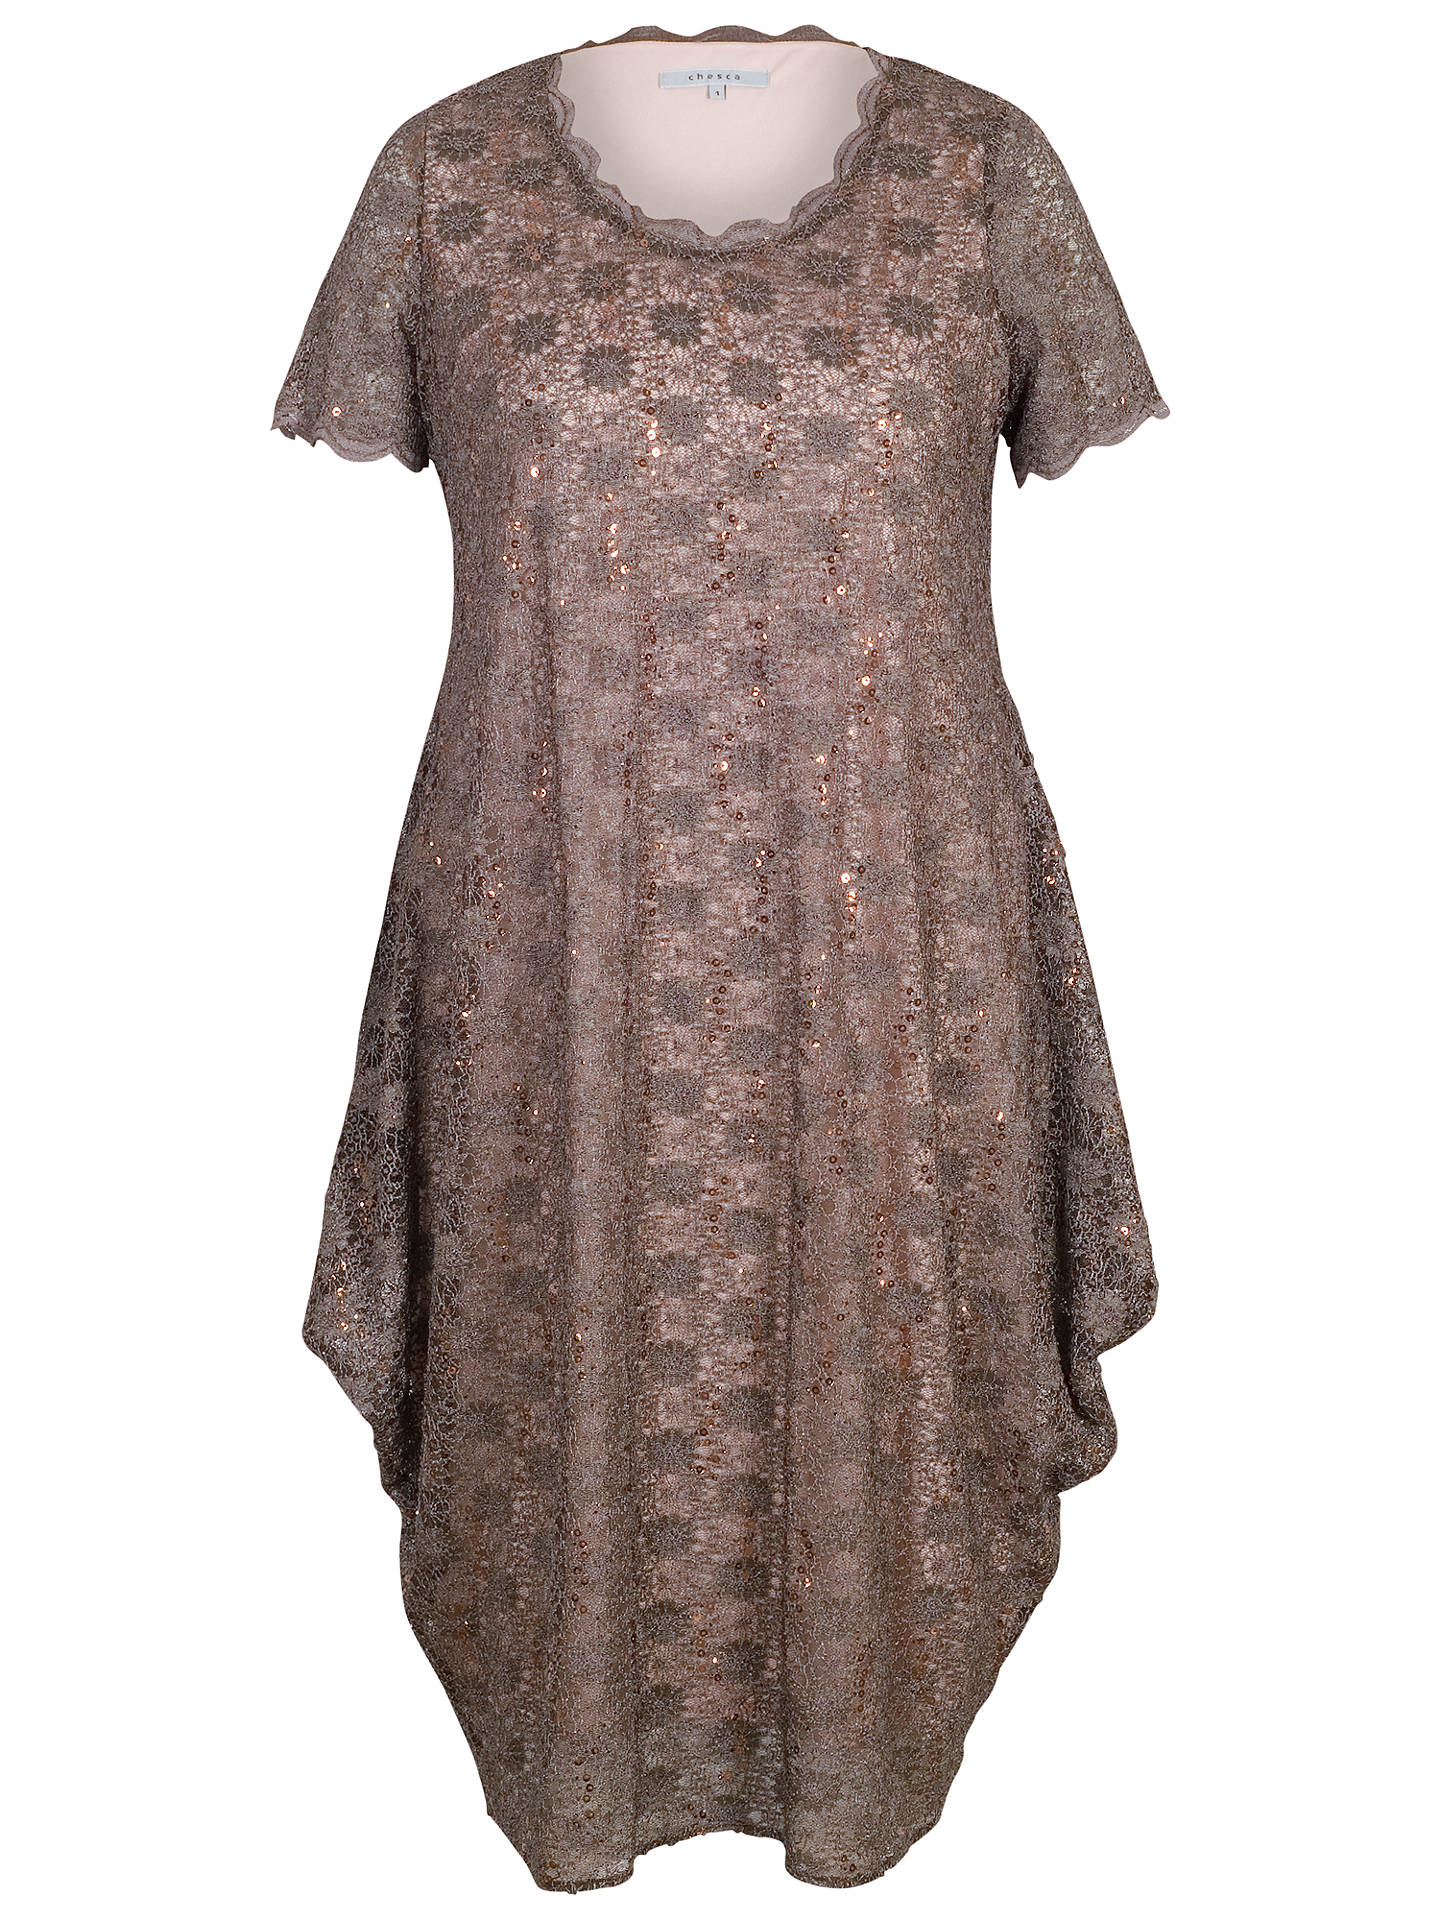 Buy Chesca Scallop Lace And Sequin Dress, Mocha, 12-14 Online at johnlewis.com